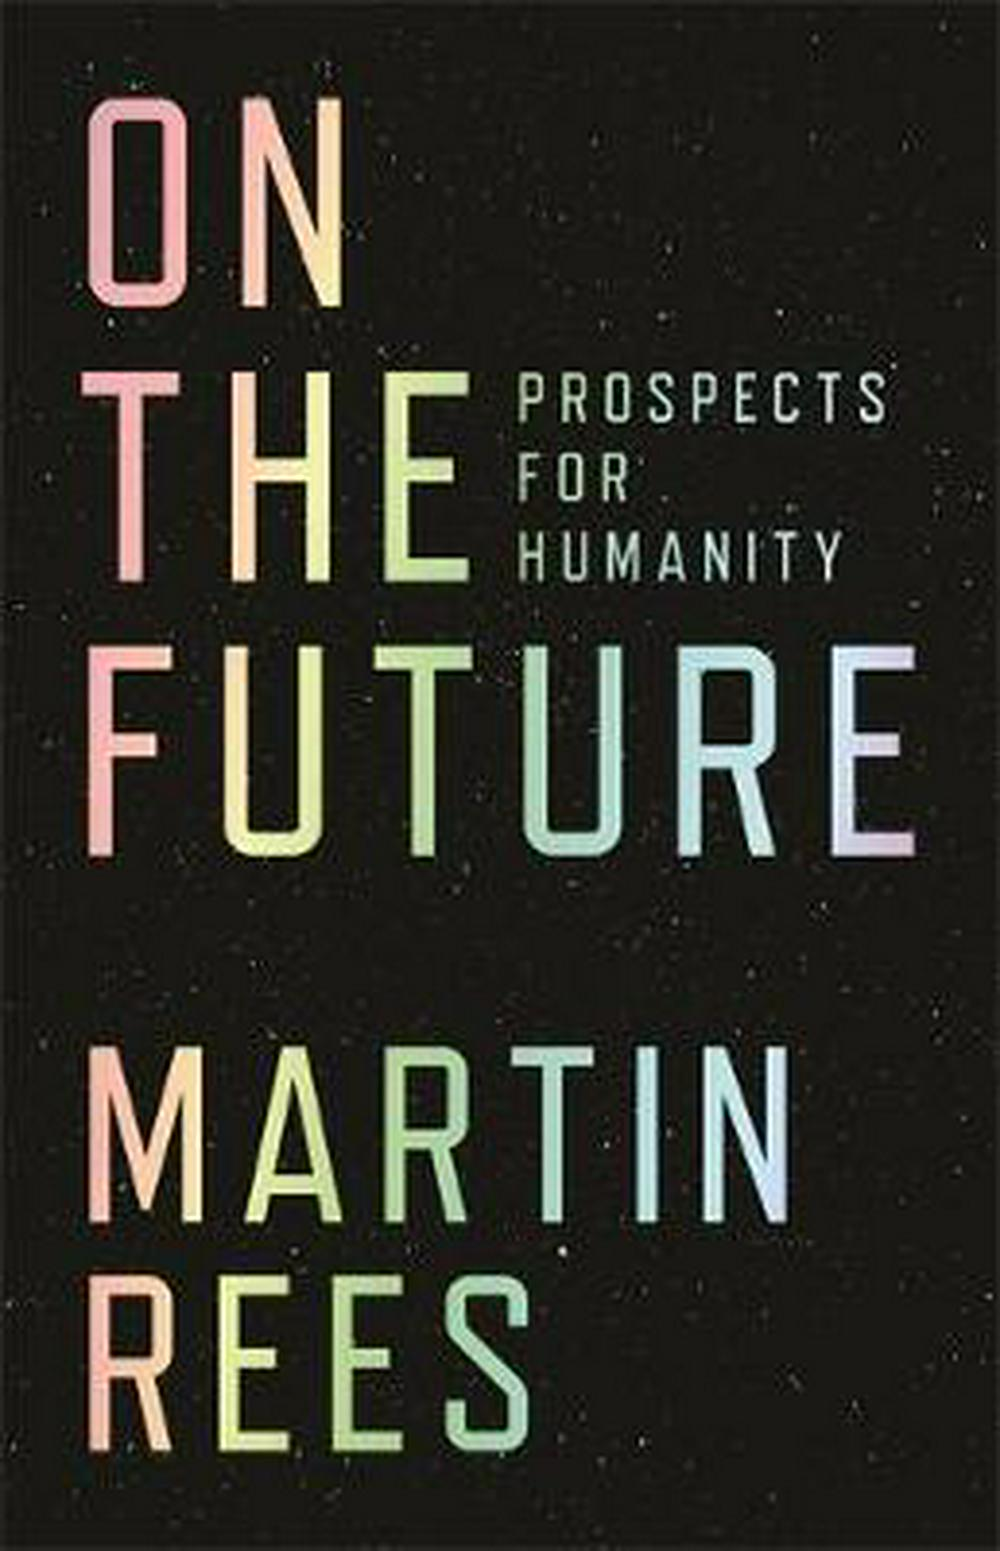 On the FutureProspects for Humanity